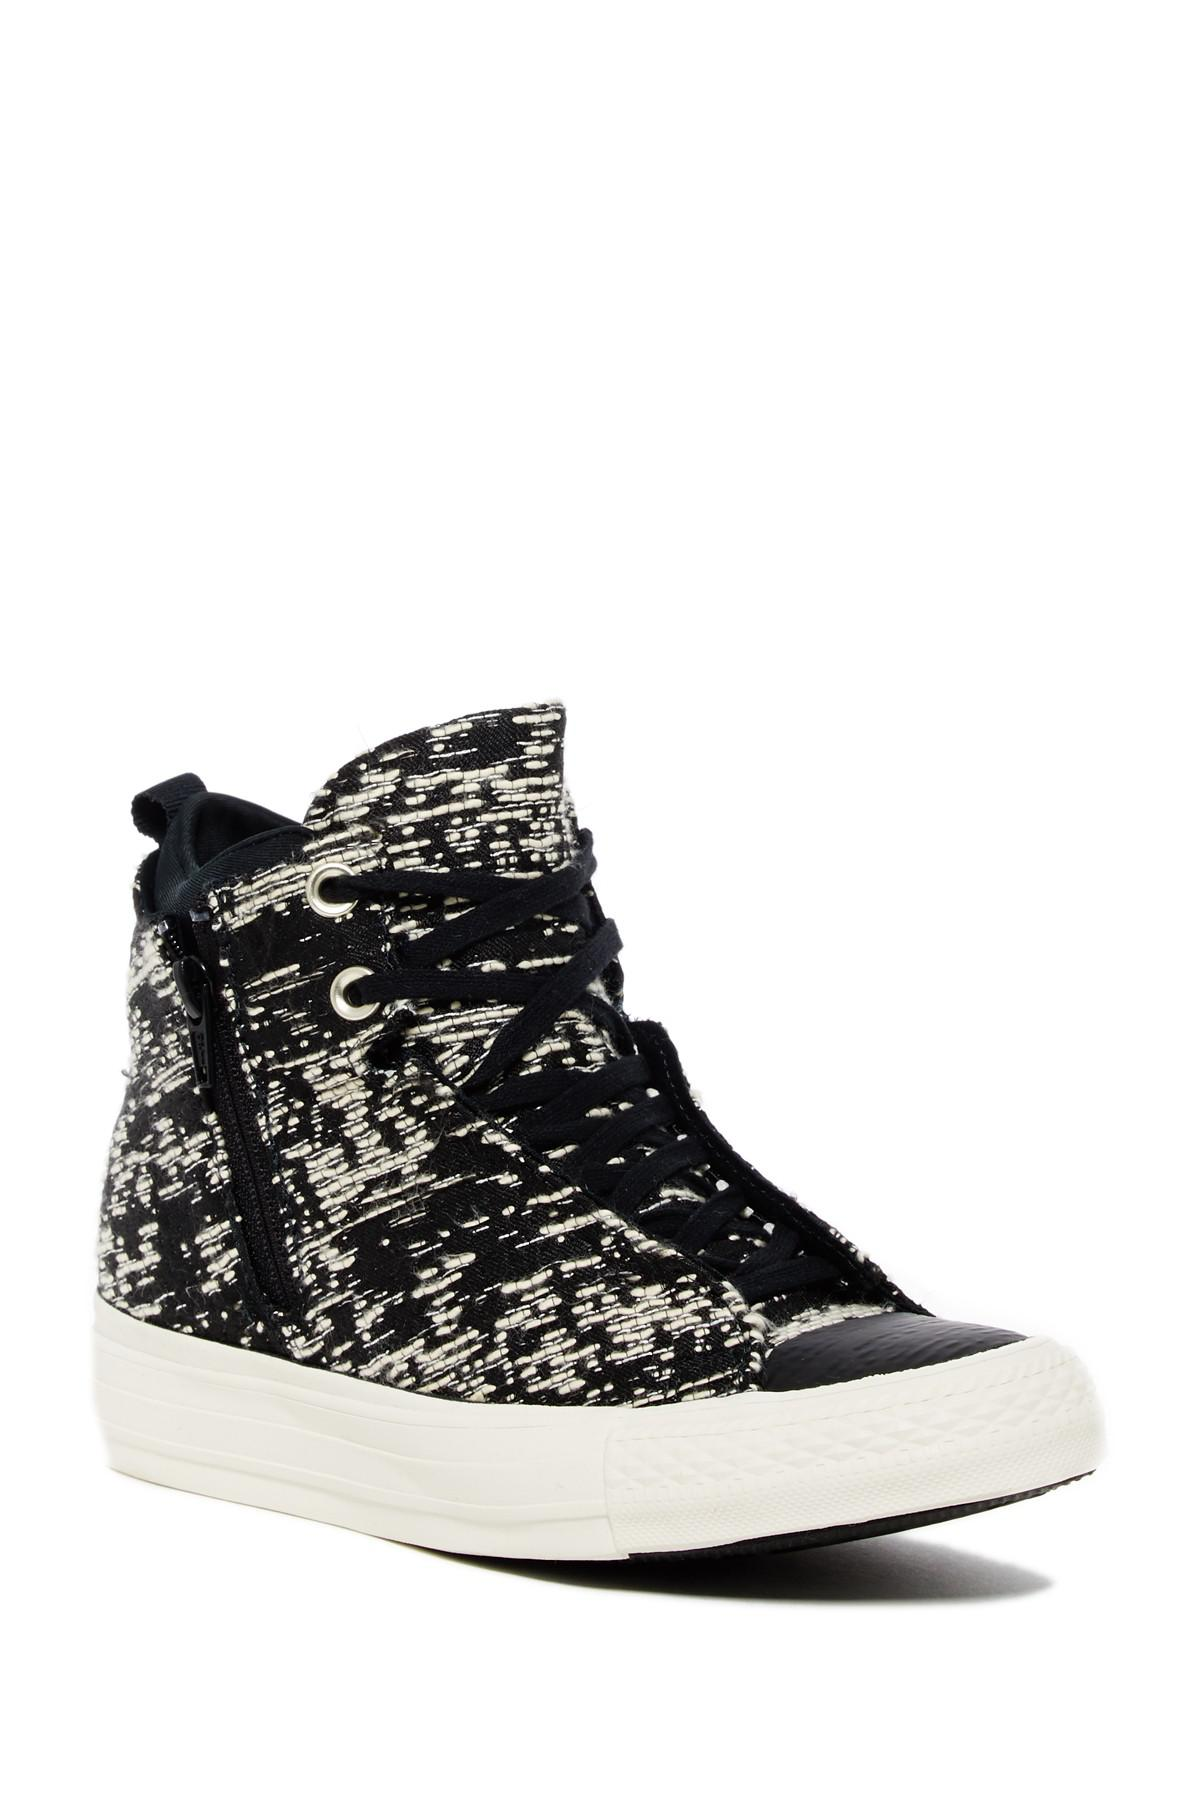 153ee385b2f6 Lyst - Converse Chuck Taylor All Star Selene Winter Knit Hi Top ...